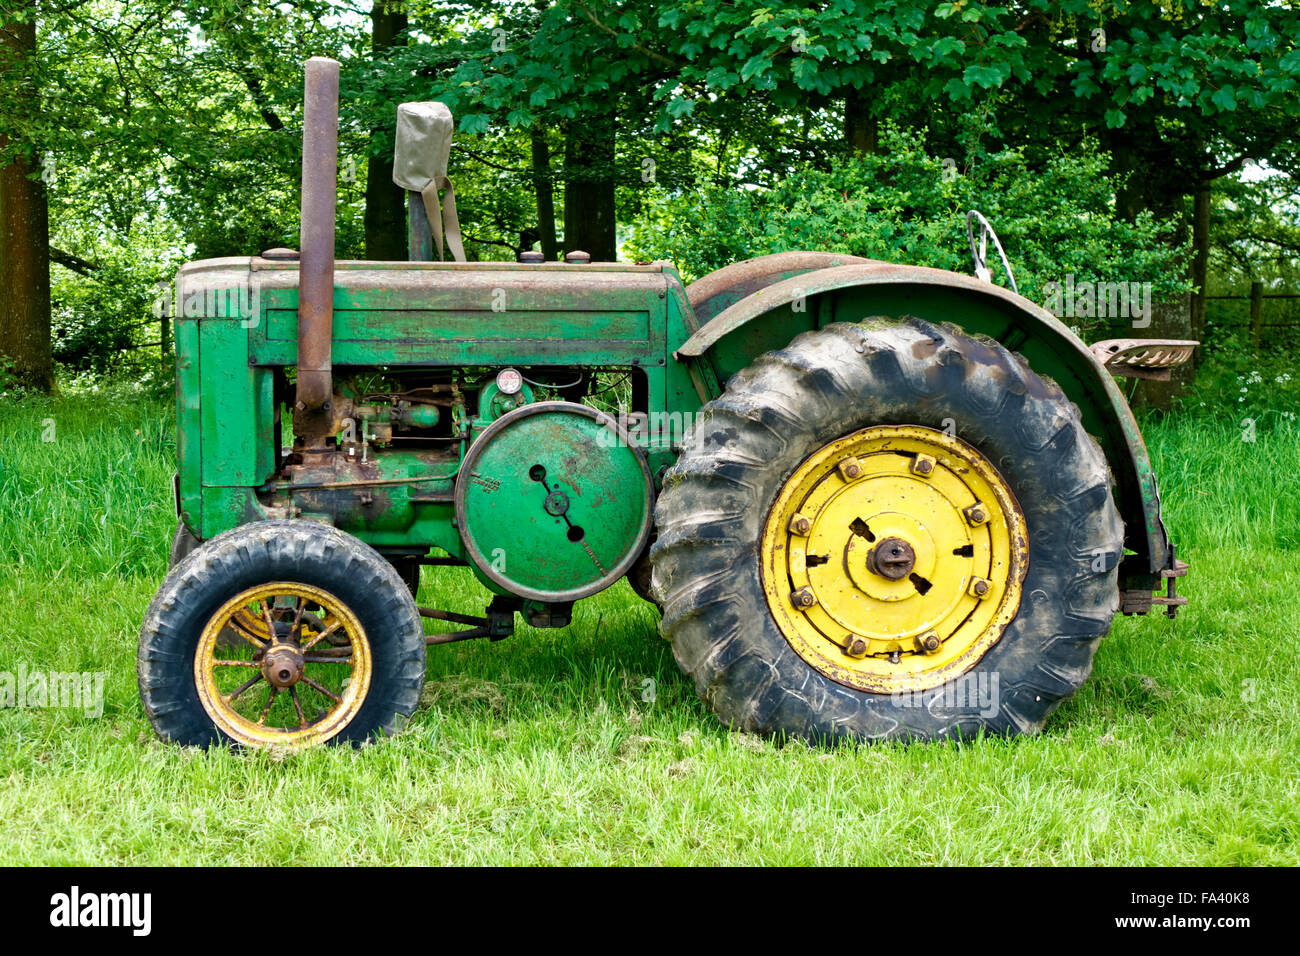 John Deere Tractor Shows : A vintage john deere tractor on public display at the